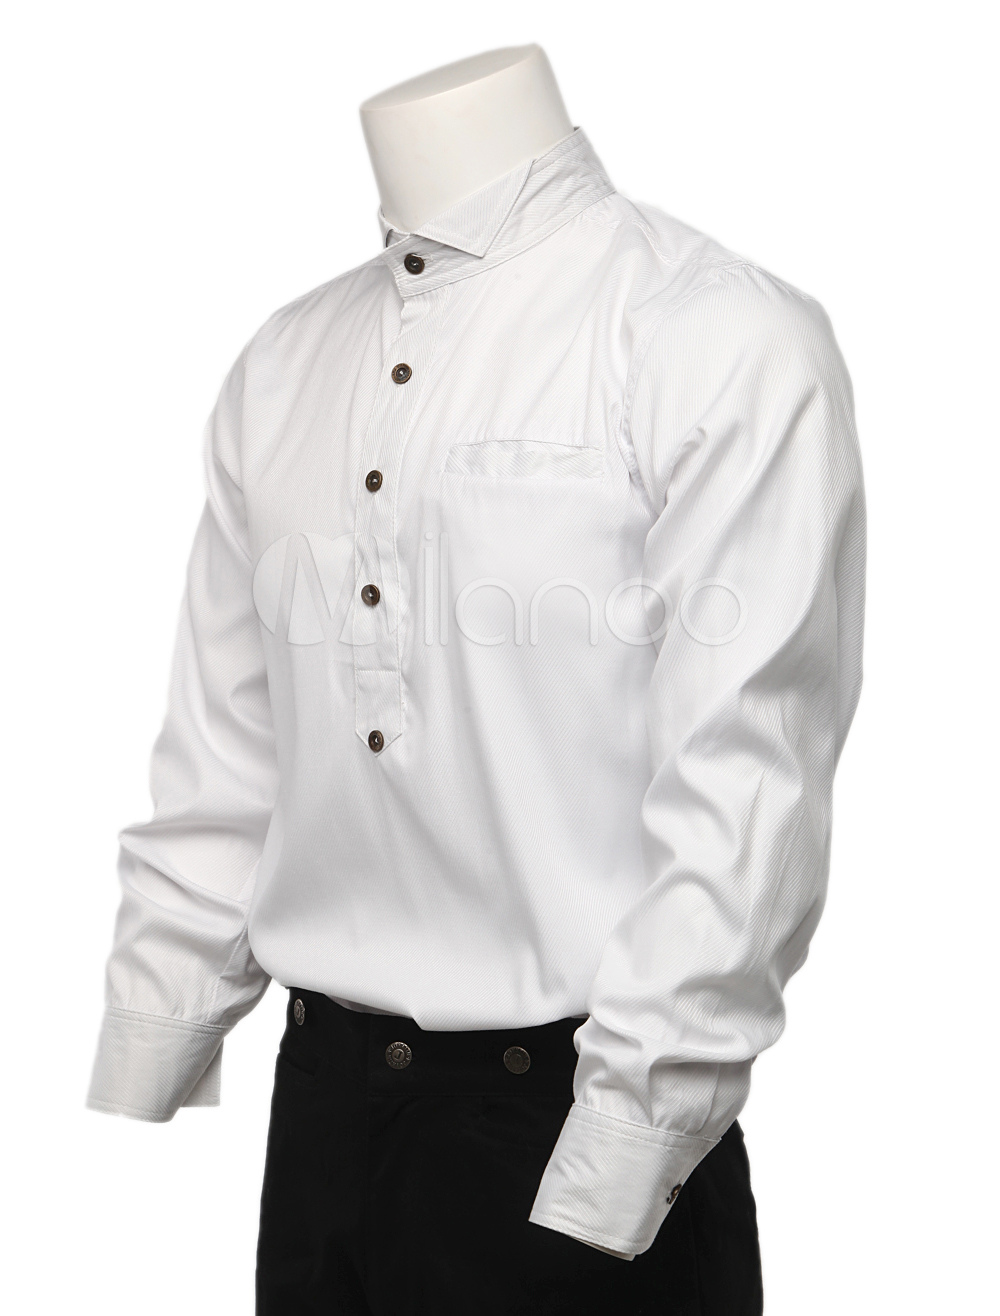 Cozy White Cotton Long Sleeves Steampunk Shirt For Men $50.99 AT vintagedancer.com